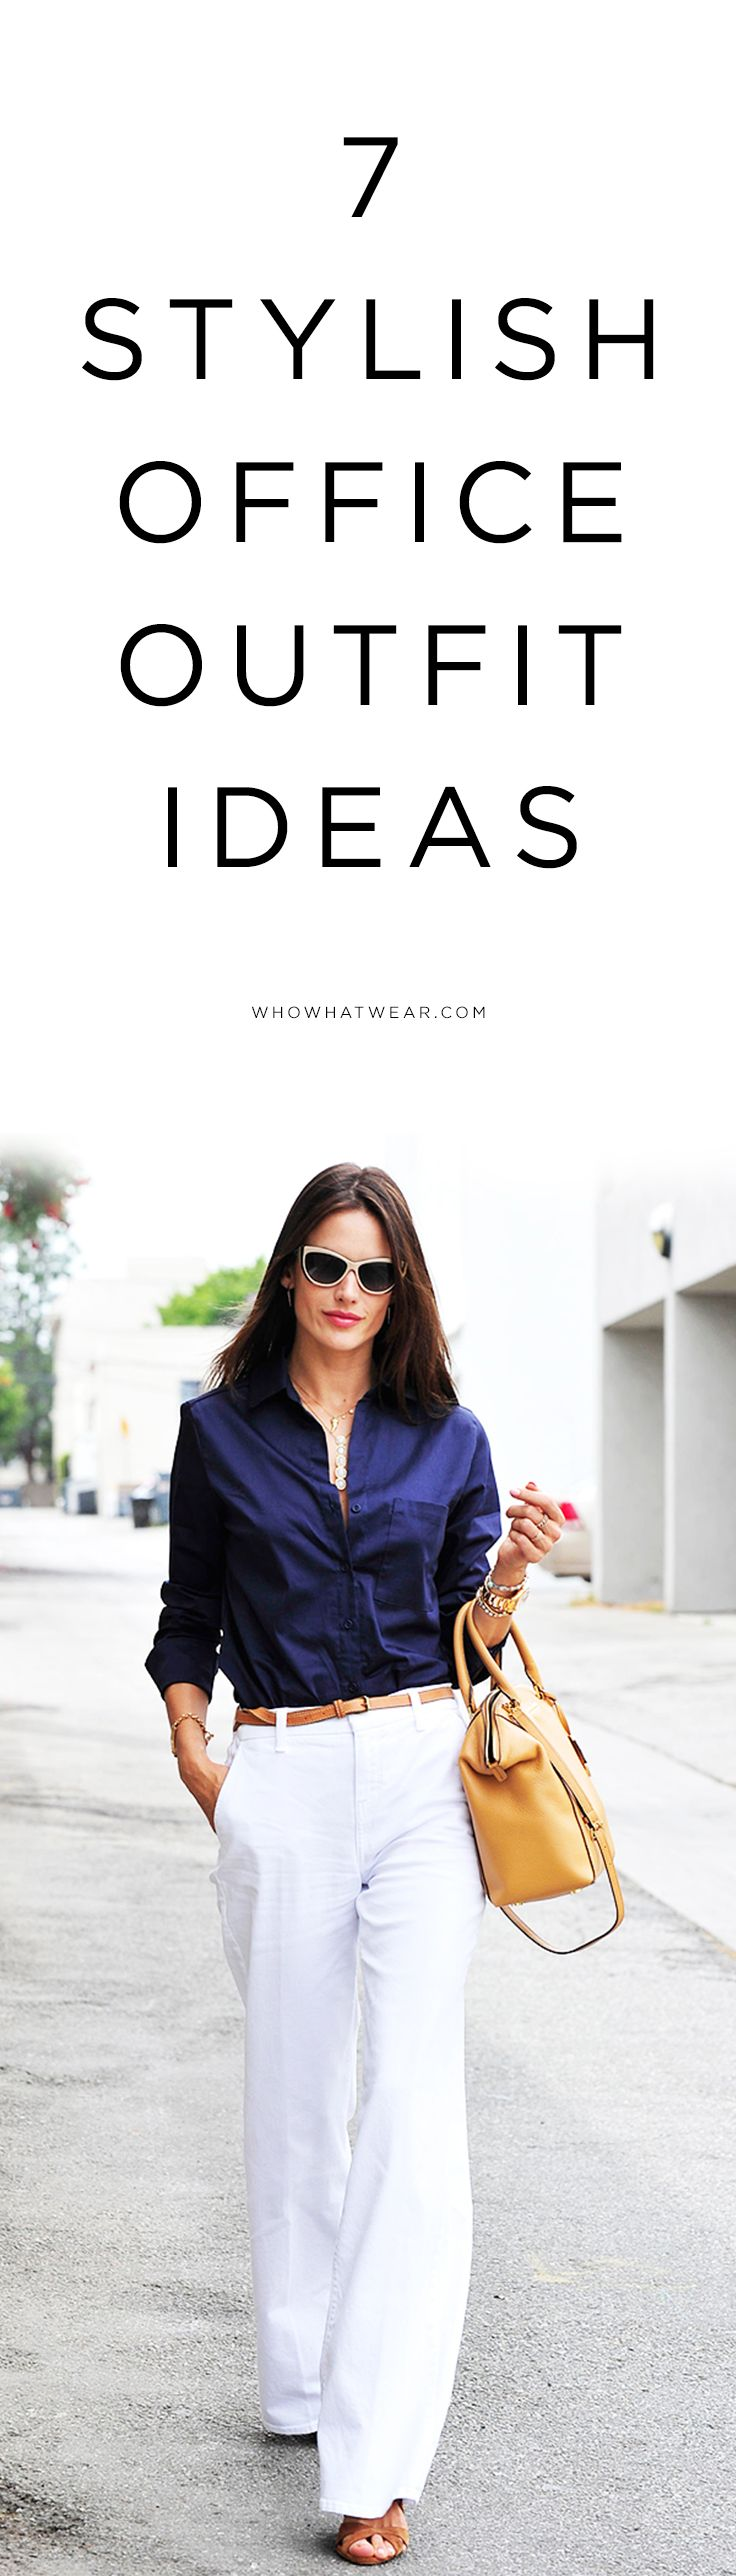 3 Ways to Dress Business Casual - wikiHow